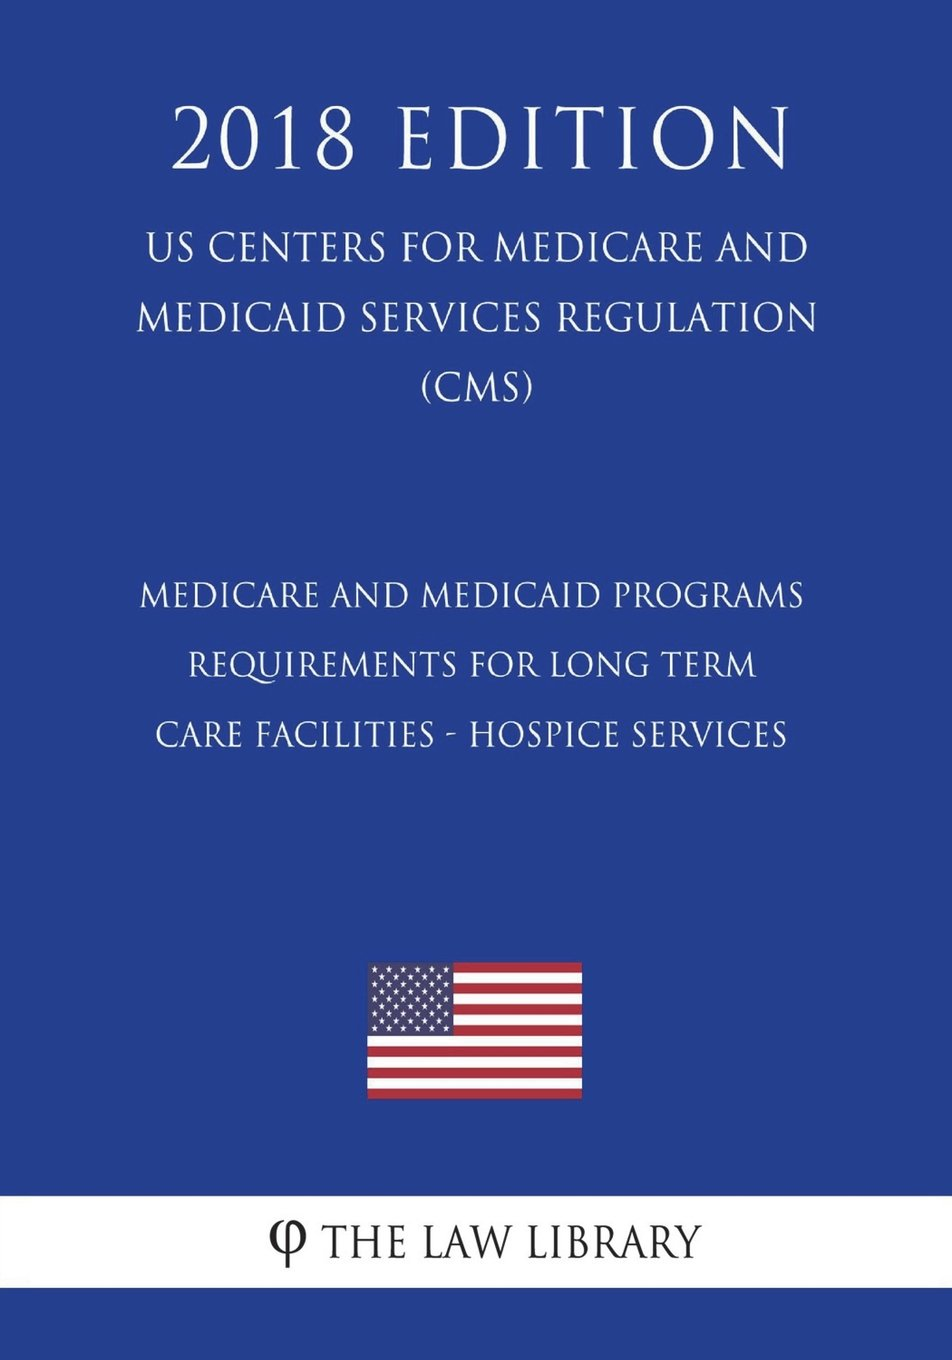 Read Online Medicare and Medicaid Programs - Requirements for Long Term Care Facilities - Hospice Services (US Centers for Medicare and Medicaid Services Regulation) (CMS) (2018 Edition) pdf